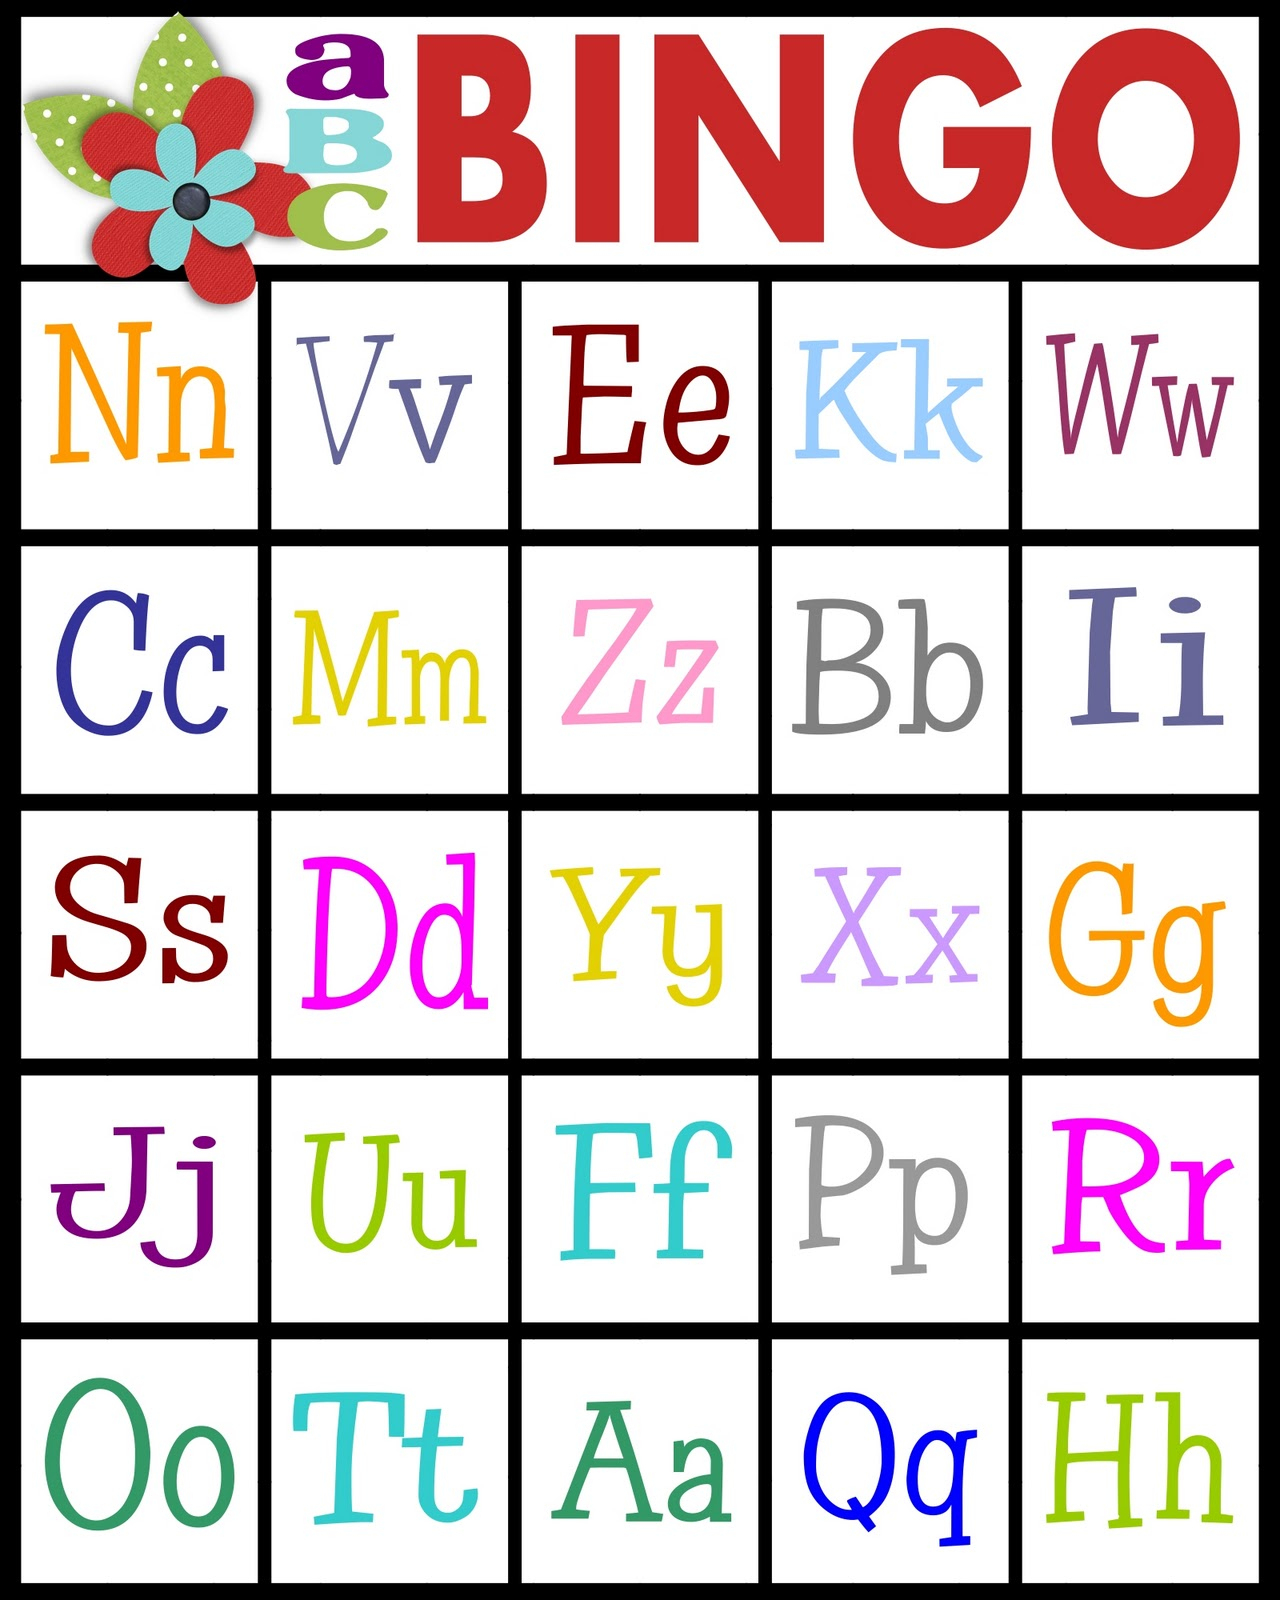 Sassy Sanctuary: Abc's Bingo- Free Printable!